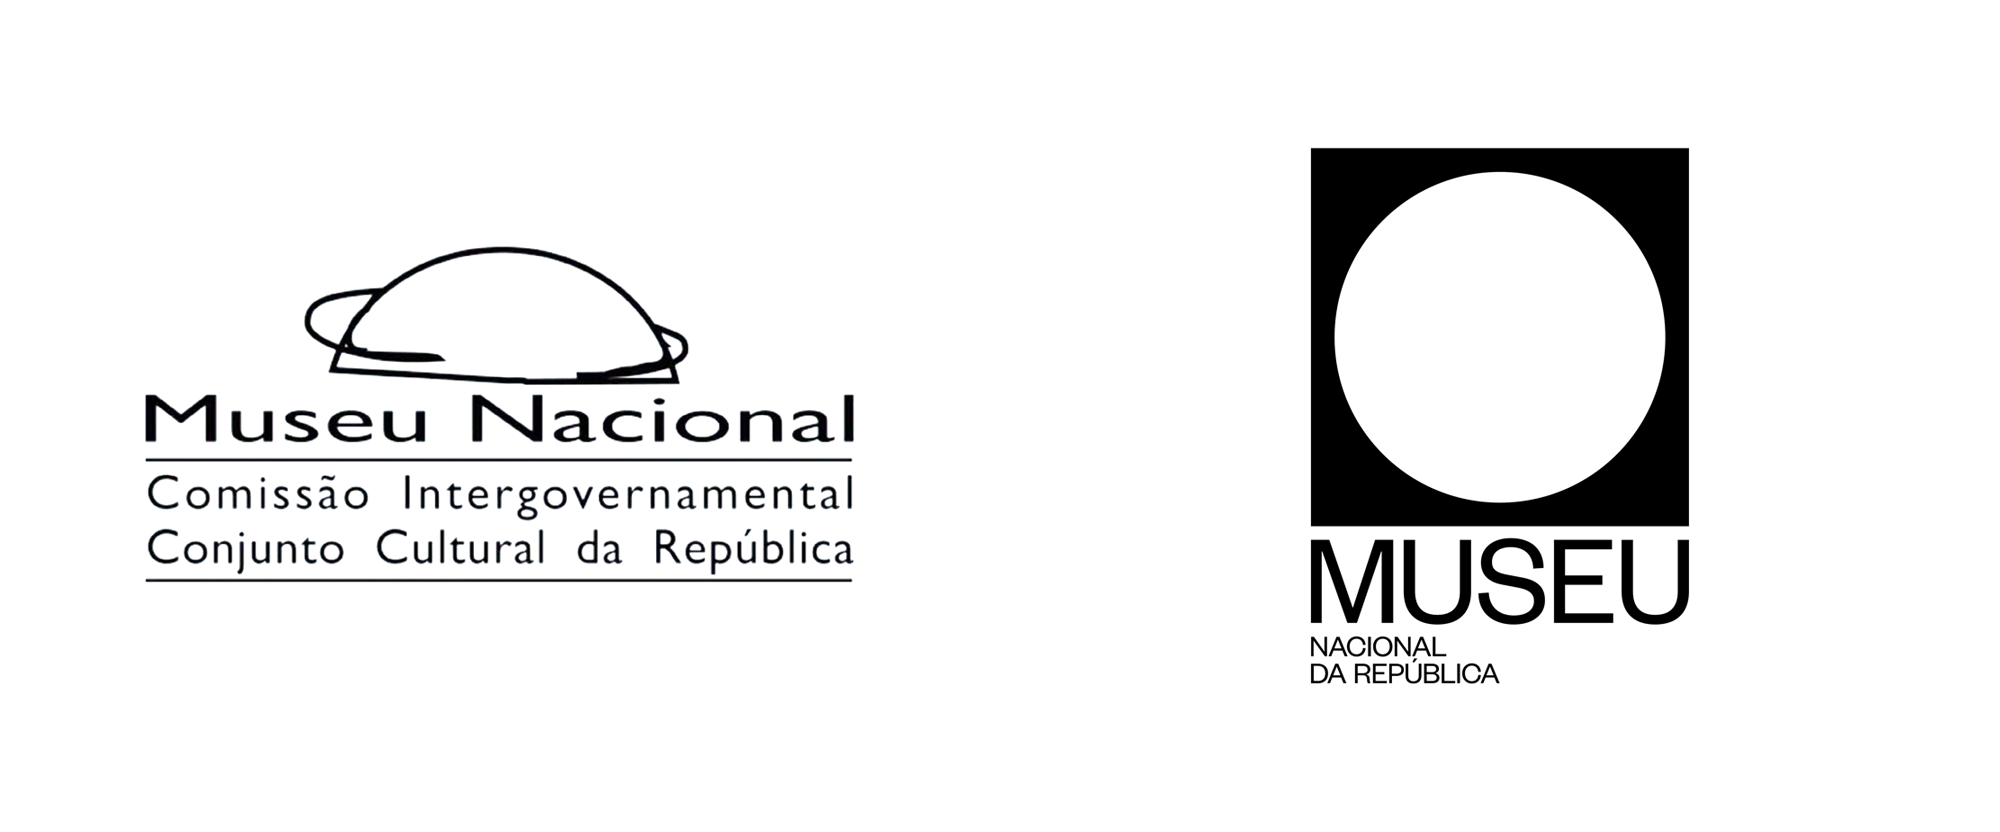 New Logo and Identity for Museu Nacional da República by Porto Rocha